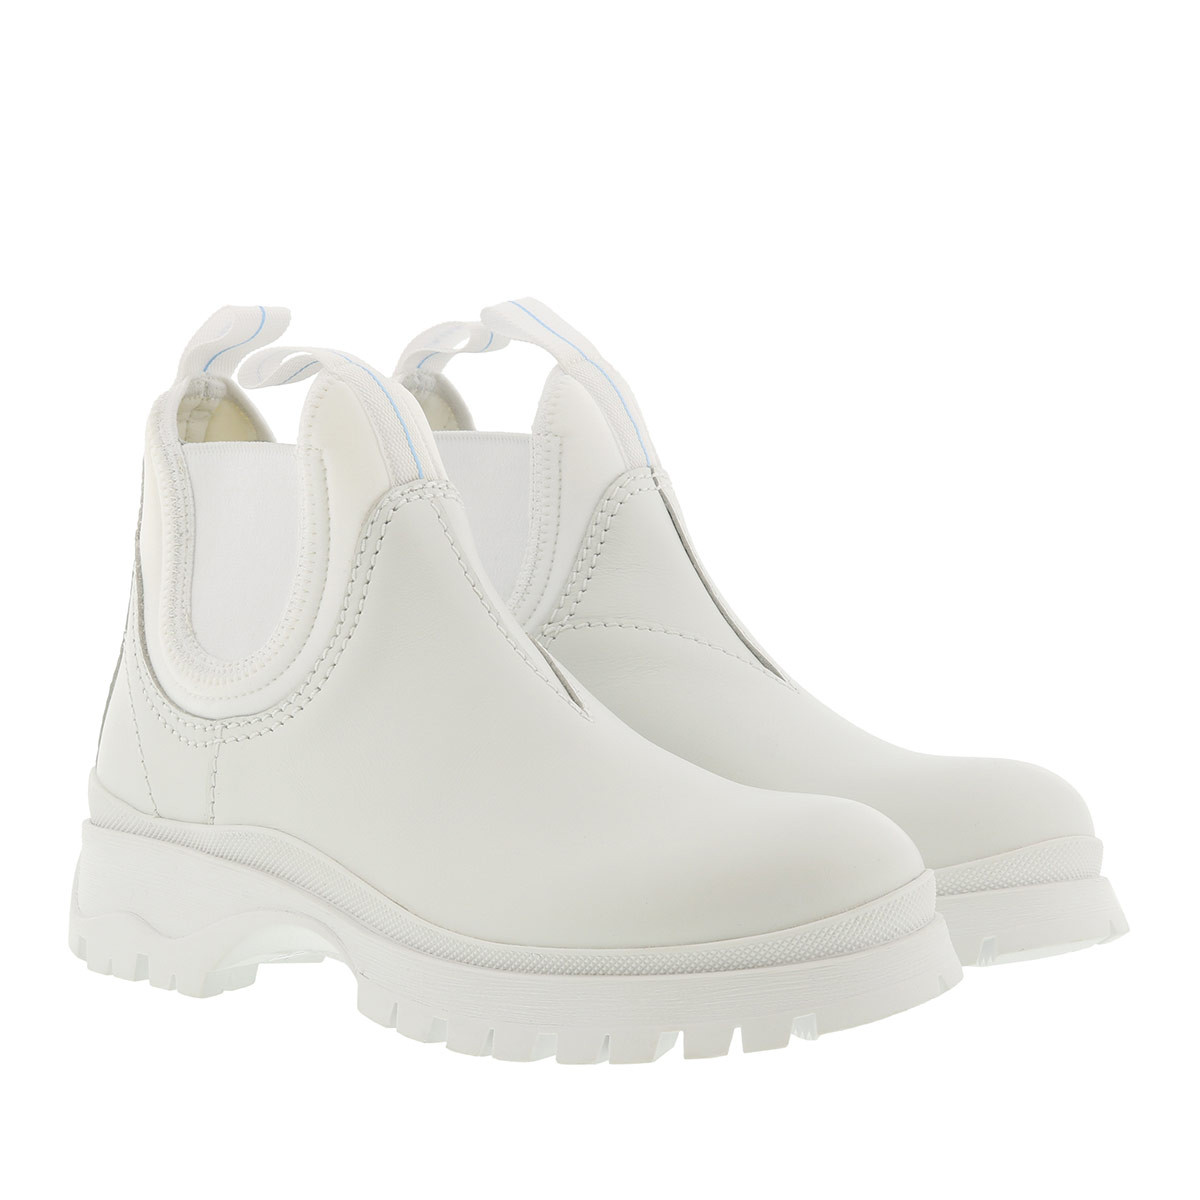 Prada Boots - Booties Calf Leather White - in weiß - für Damen